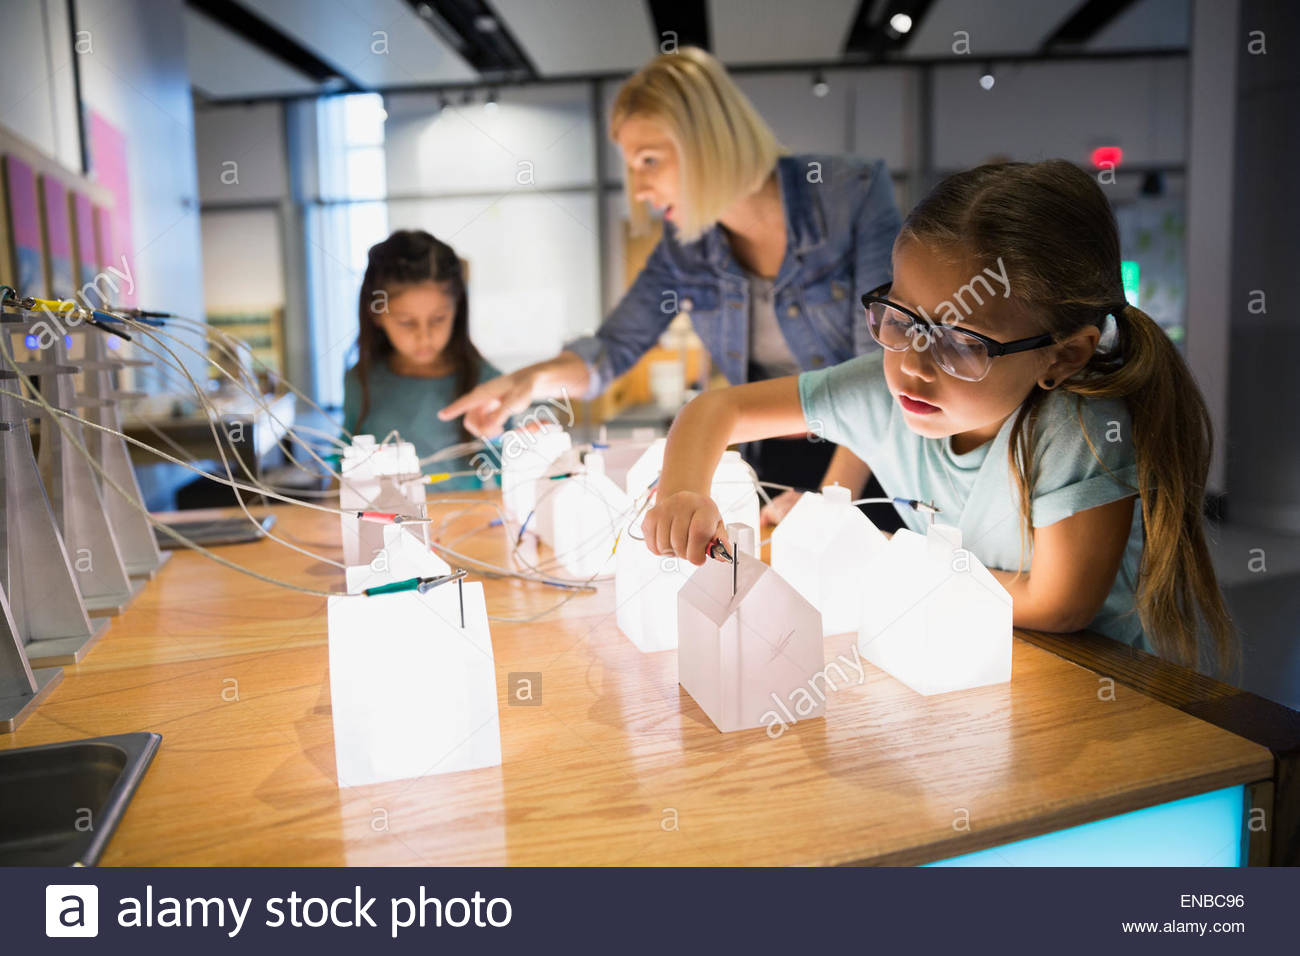 Family playing with electricity grid exhibit science center - Stock Image